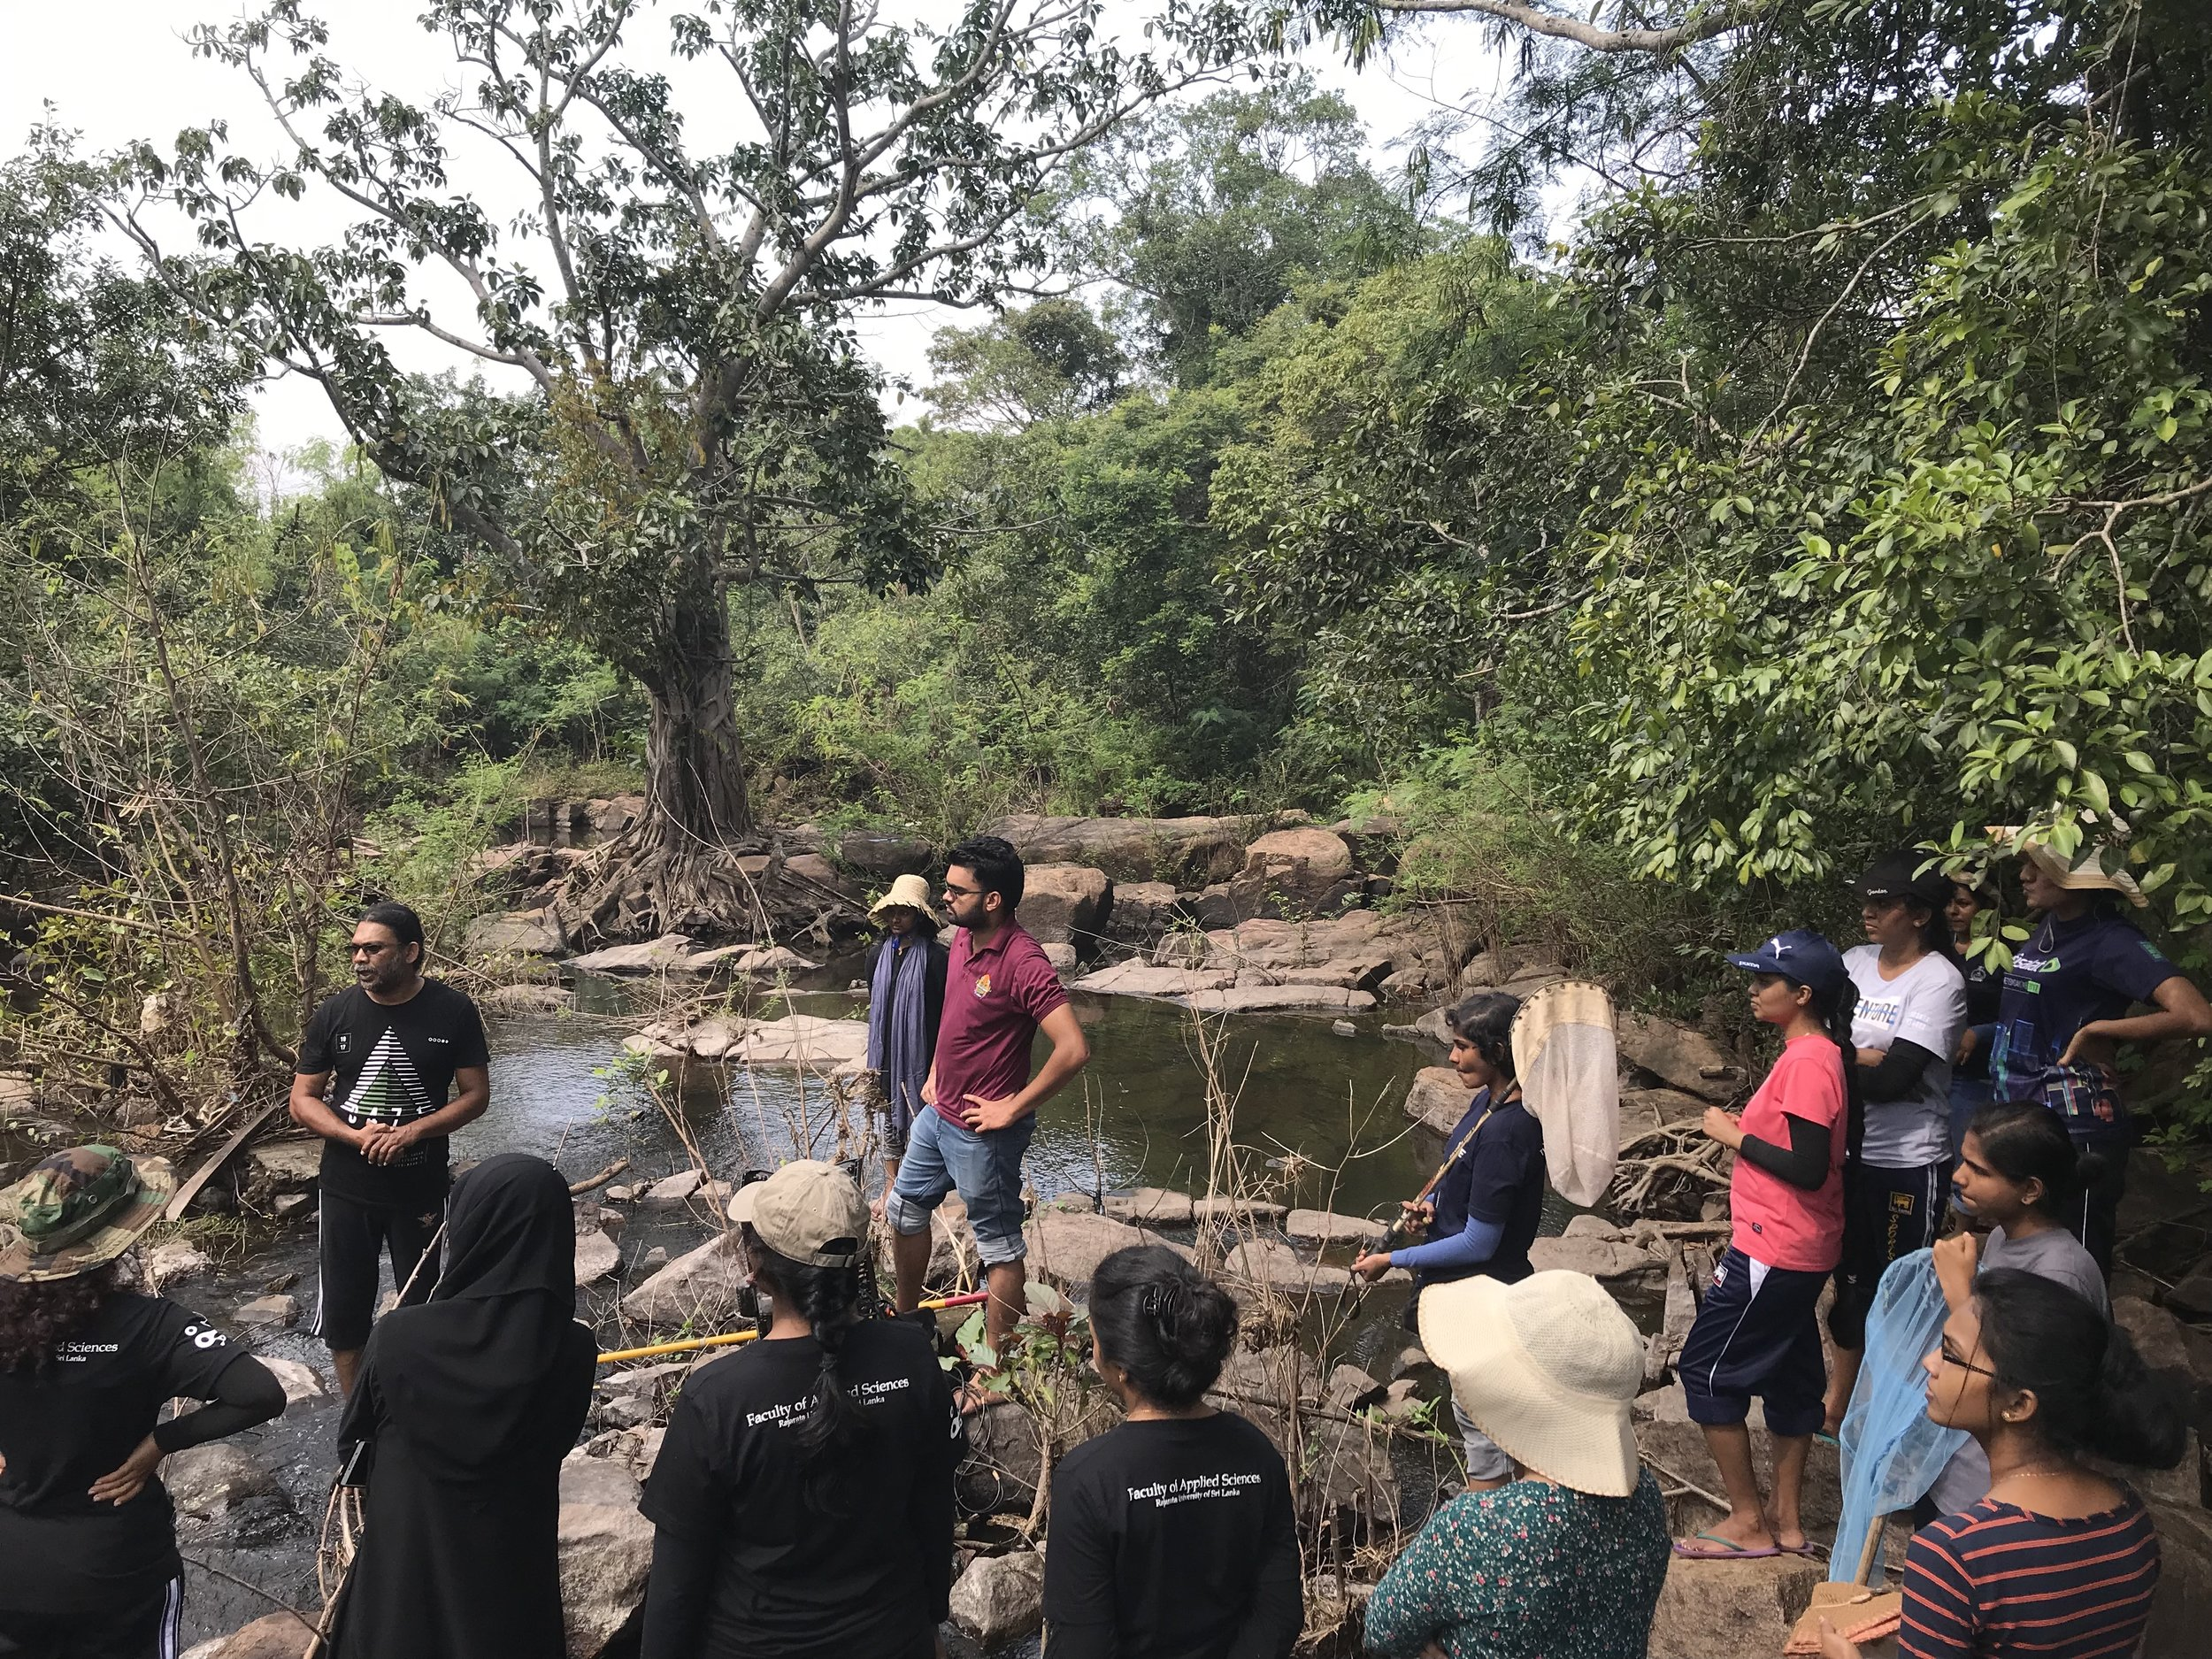 Undegraduate students from Rajarata University listening to the day's plan from their instructor, moments before they all enter this stream to begin sampling for various aquatic creatures.